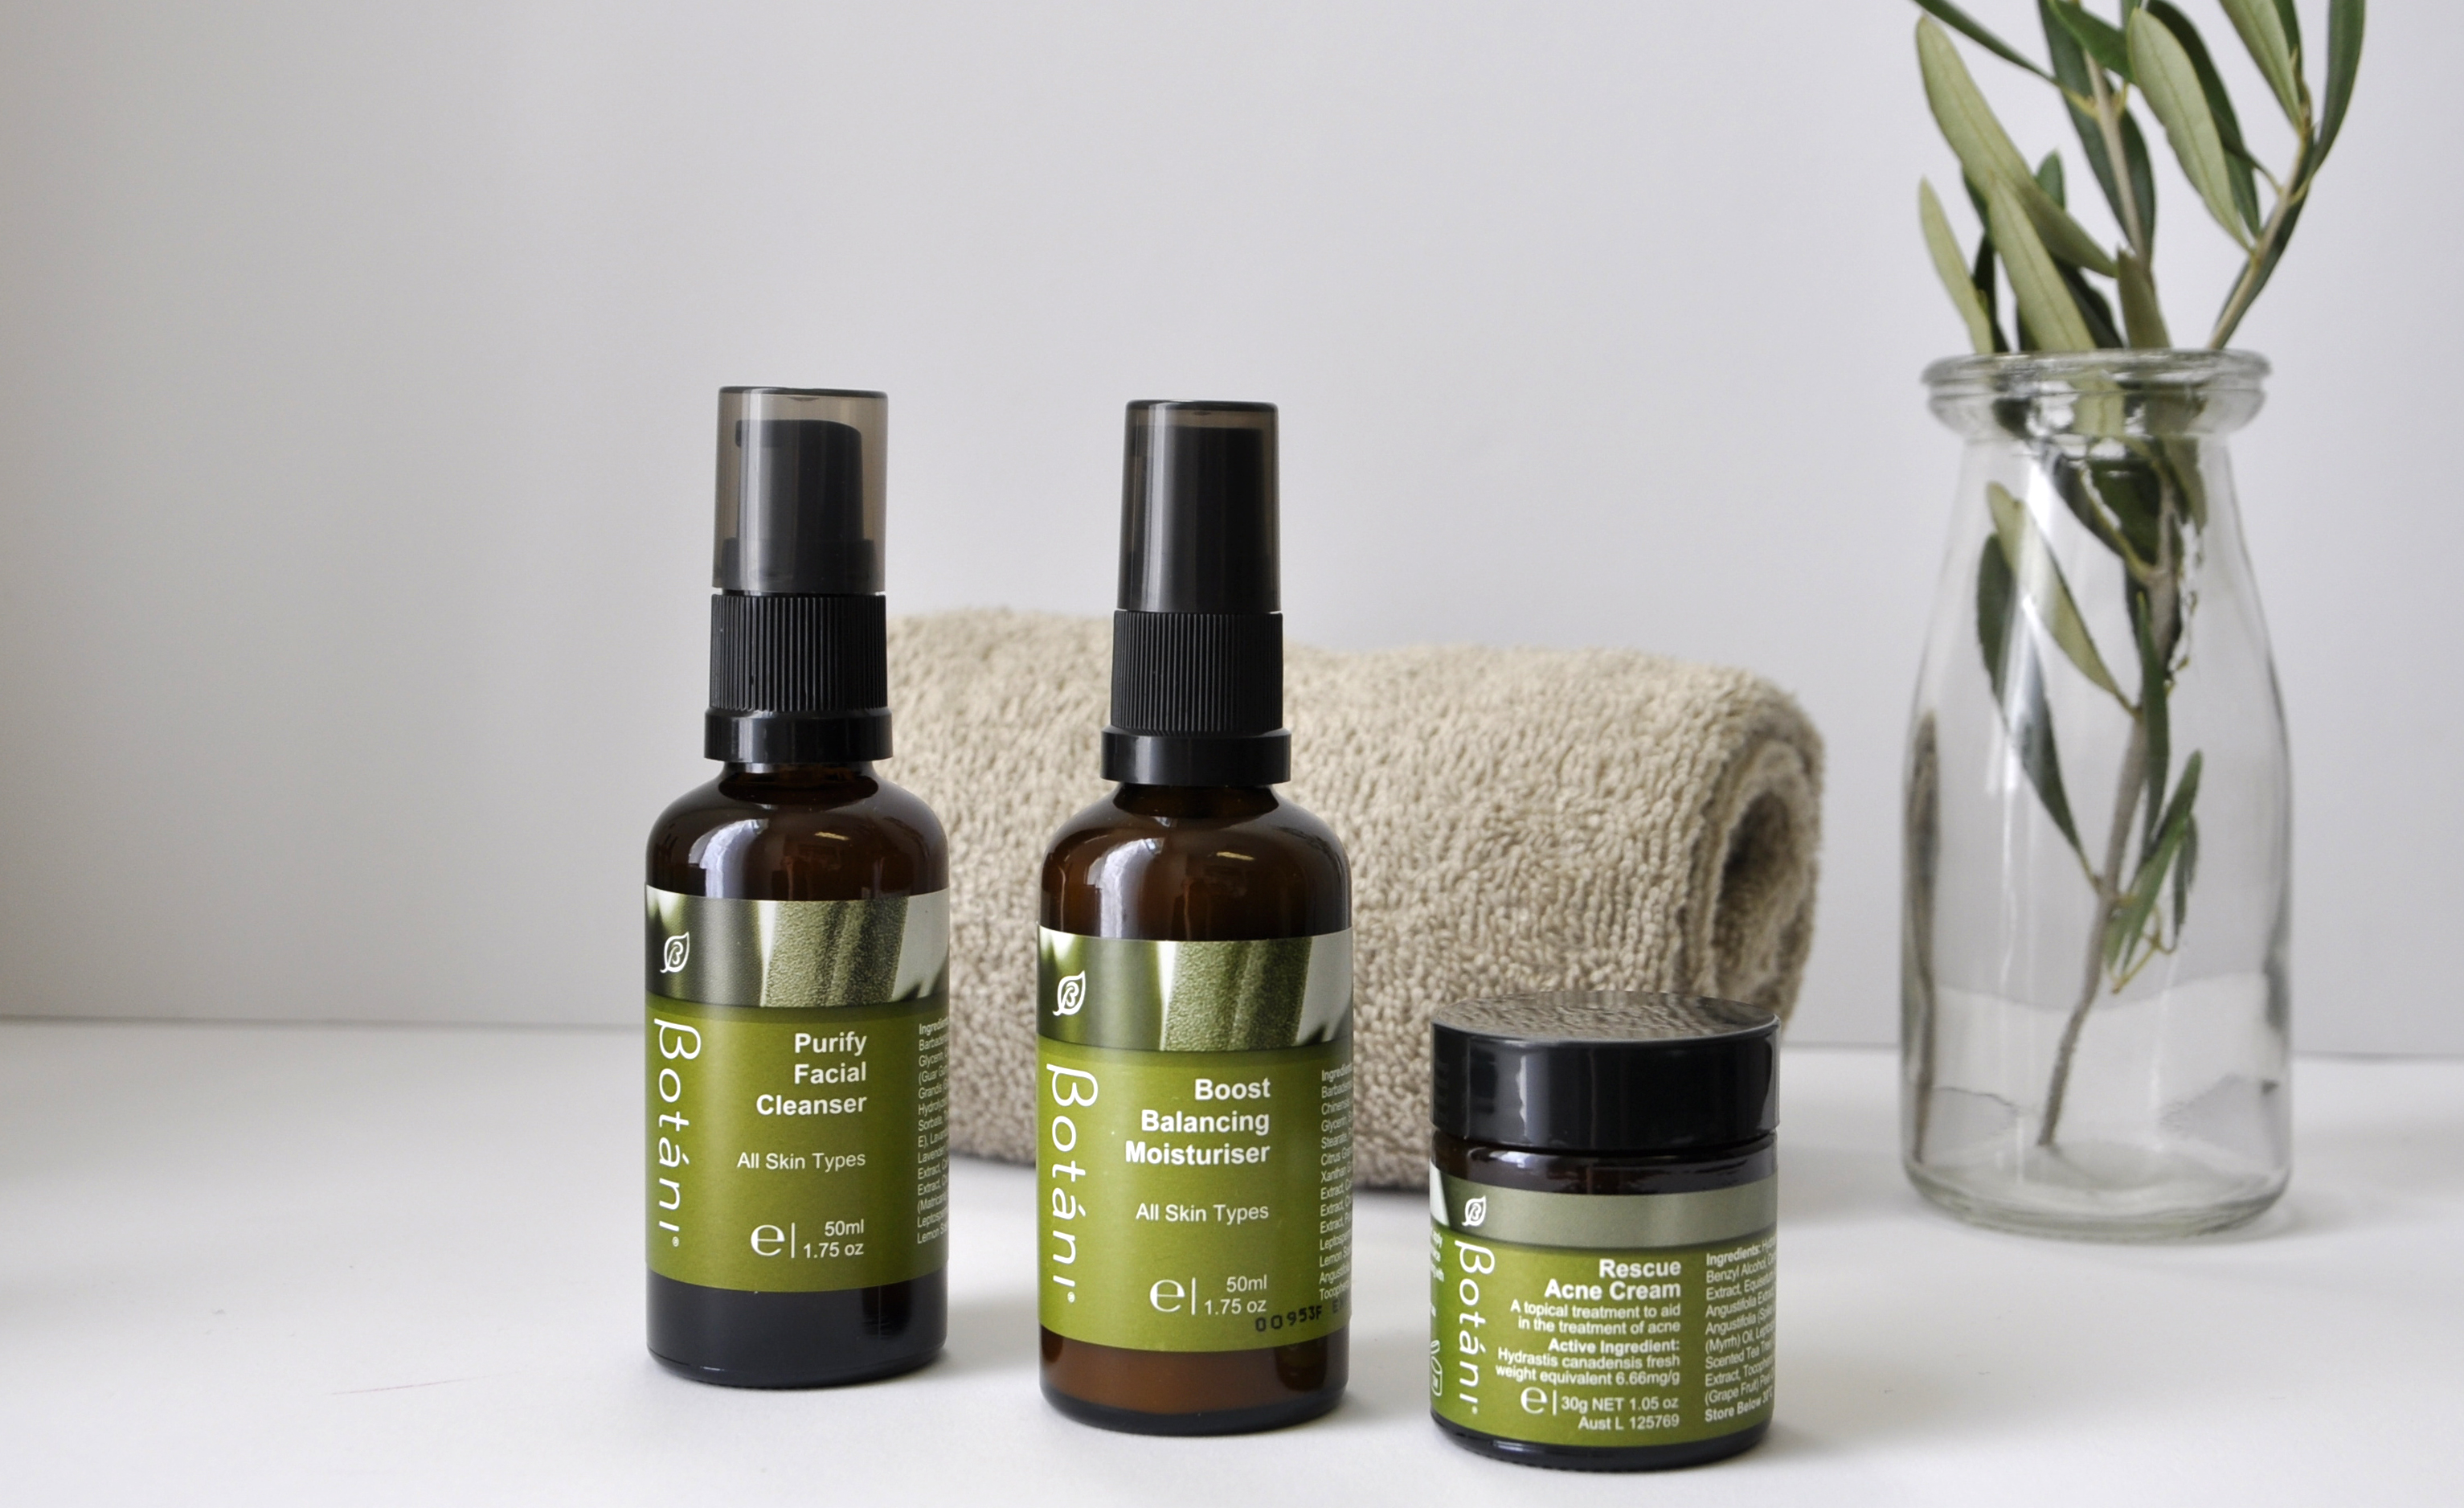 Take Control Of Your Acne Holistically With Botani